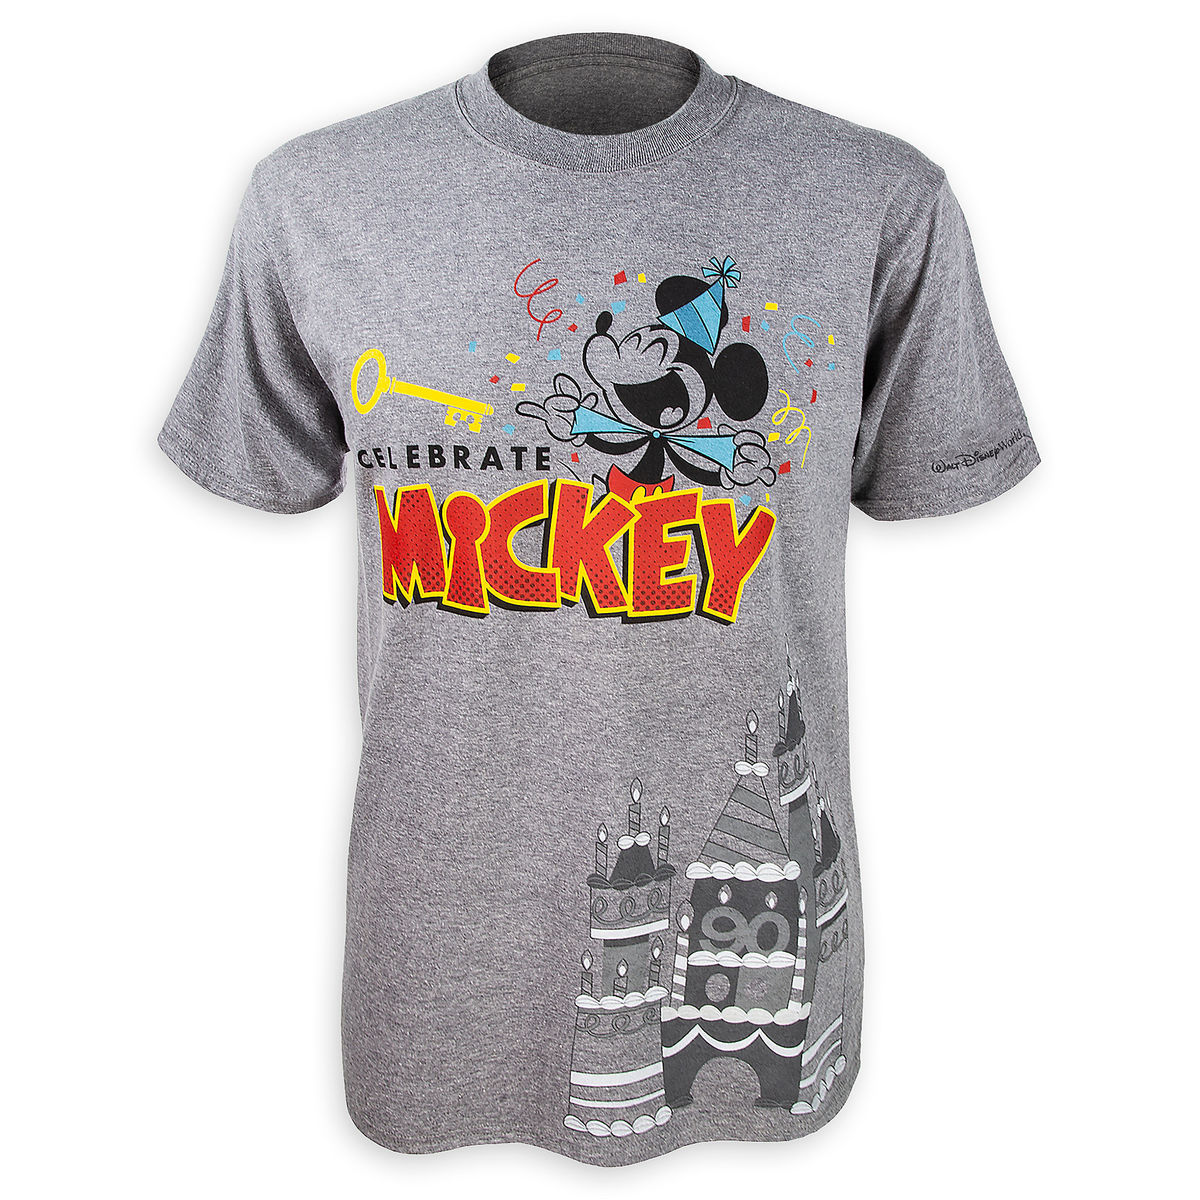 e02ac936b Disney T-Shirt for Men - Celebrate Mickey - Gray